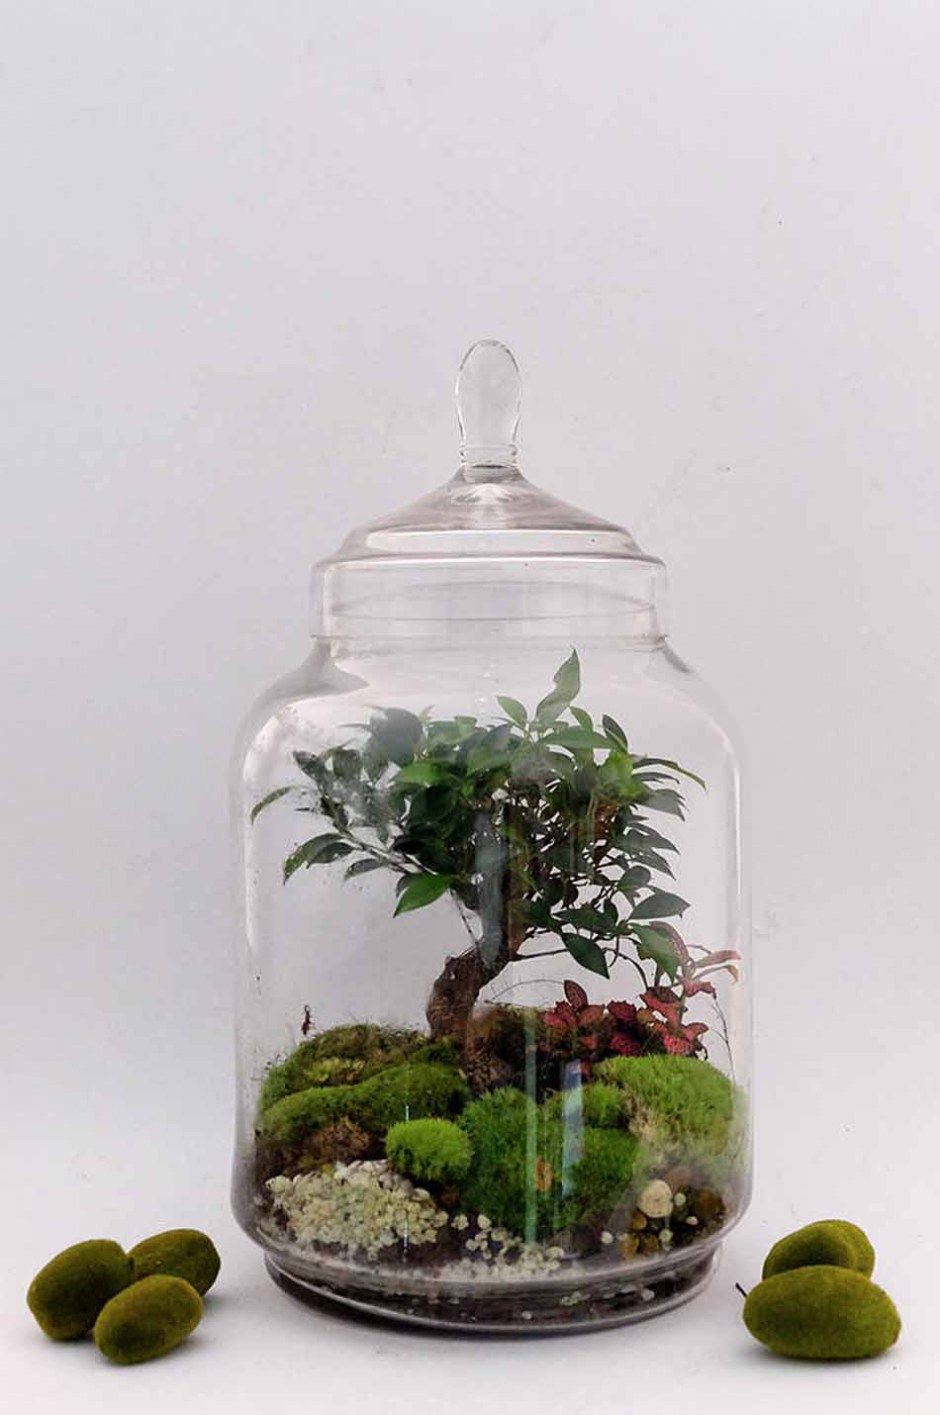 les jardins de verre de la green factory objects around garden terrarium terrarium et. Black Bedroom Furniture Sets. Home Design Ideas